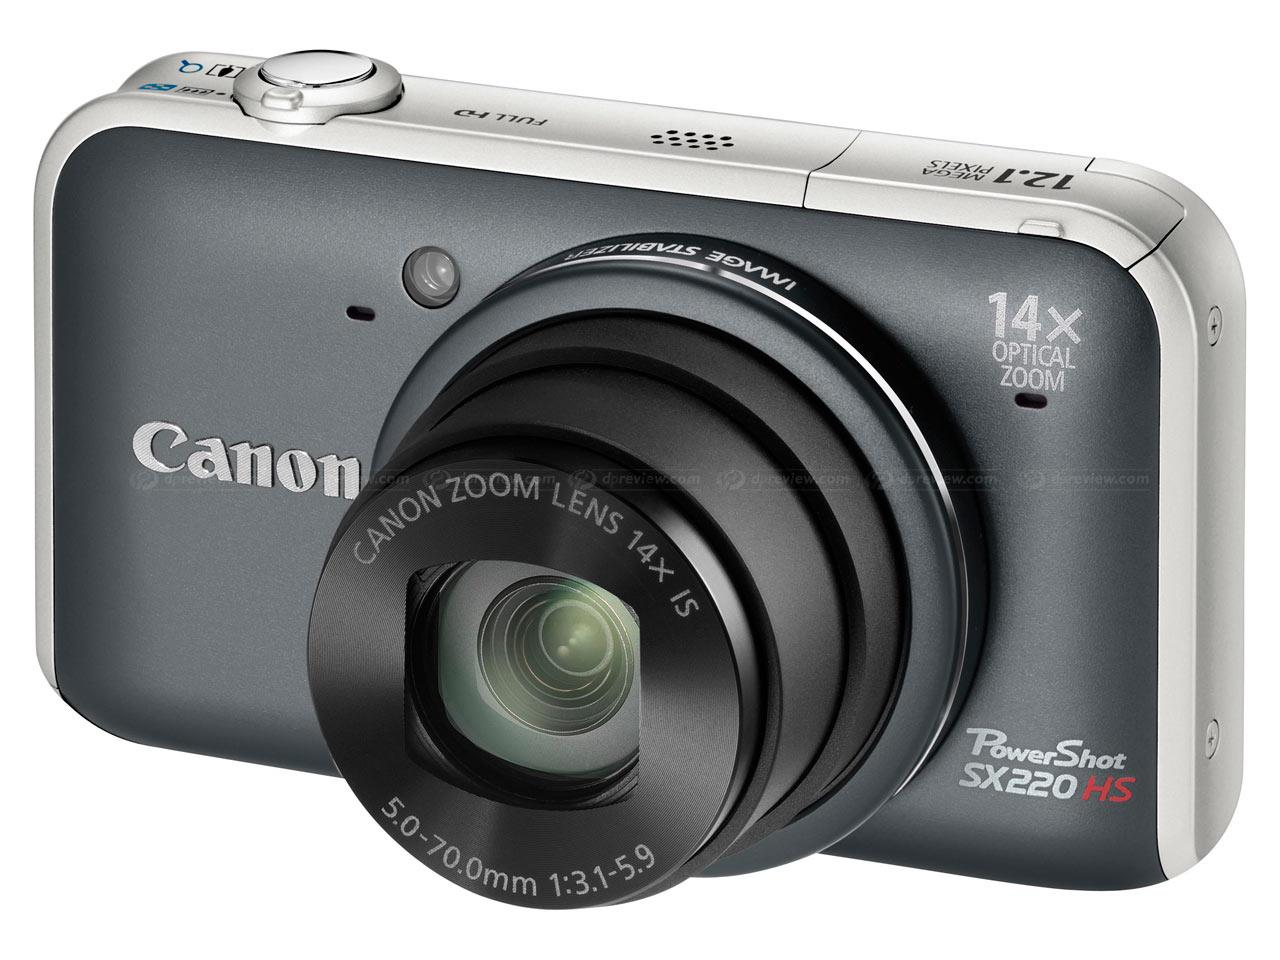 CANON POWERSHOT SX220 HS Review, Price, Model, Picture